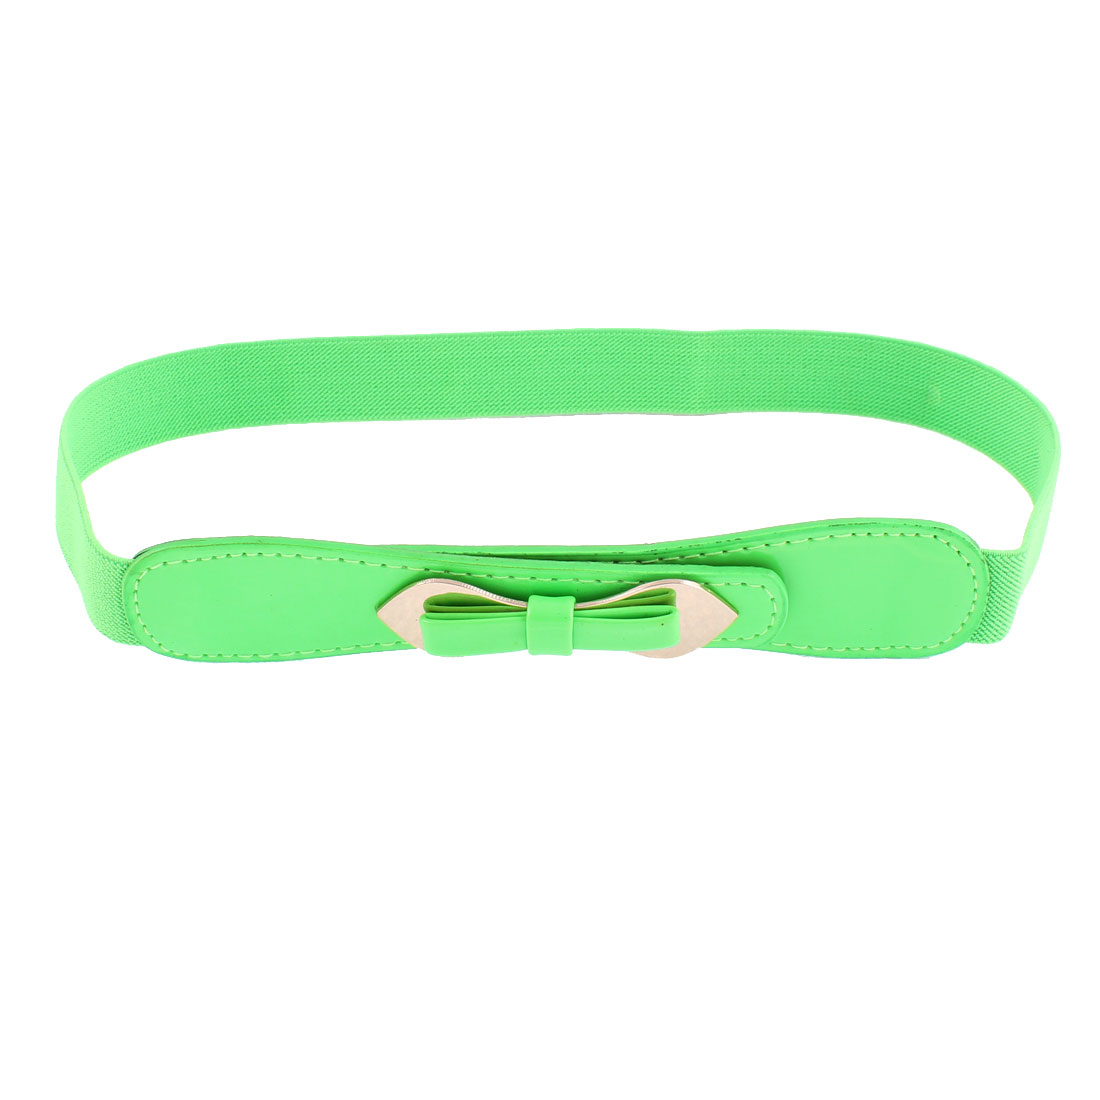 Double Pin Buckle Adjustable Elastic Waistband Waist Belt Green